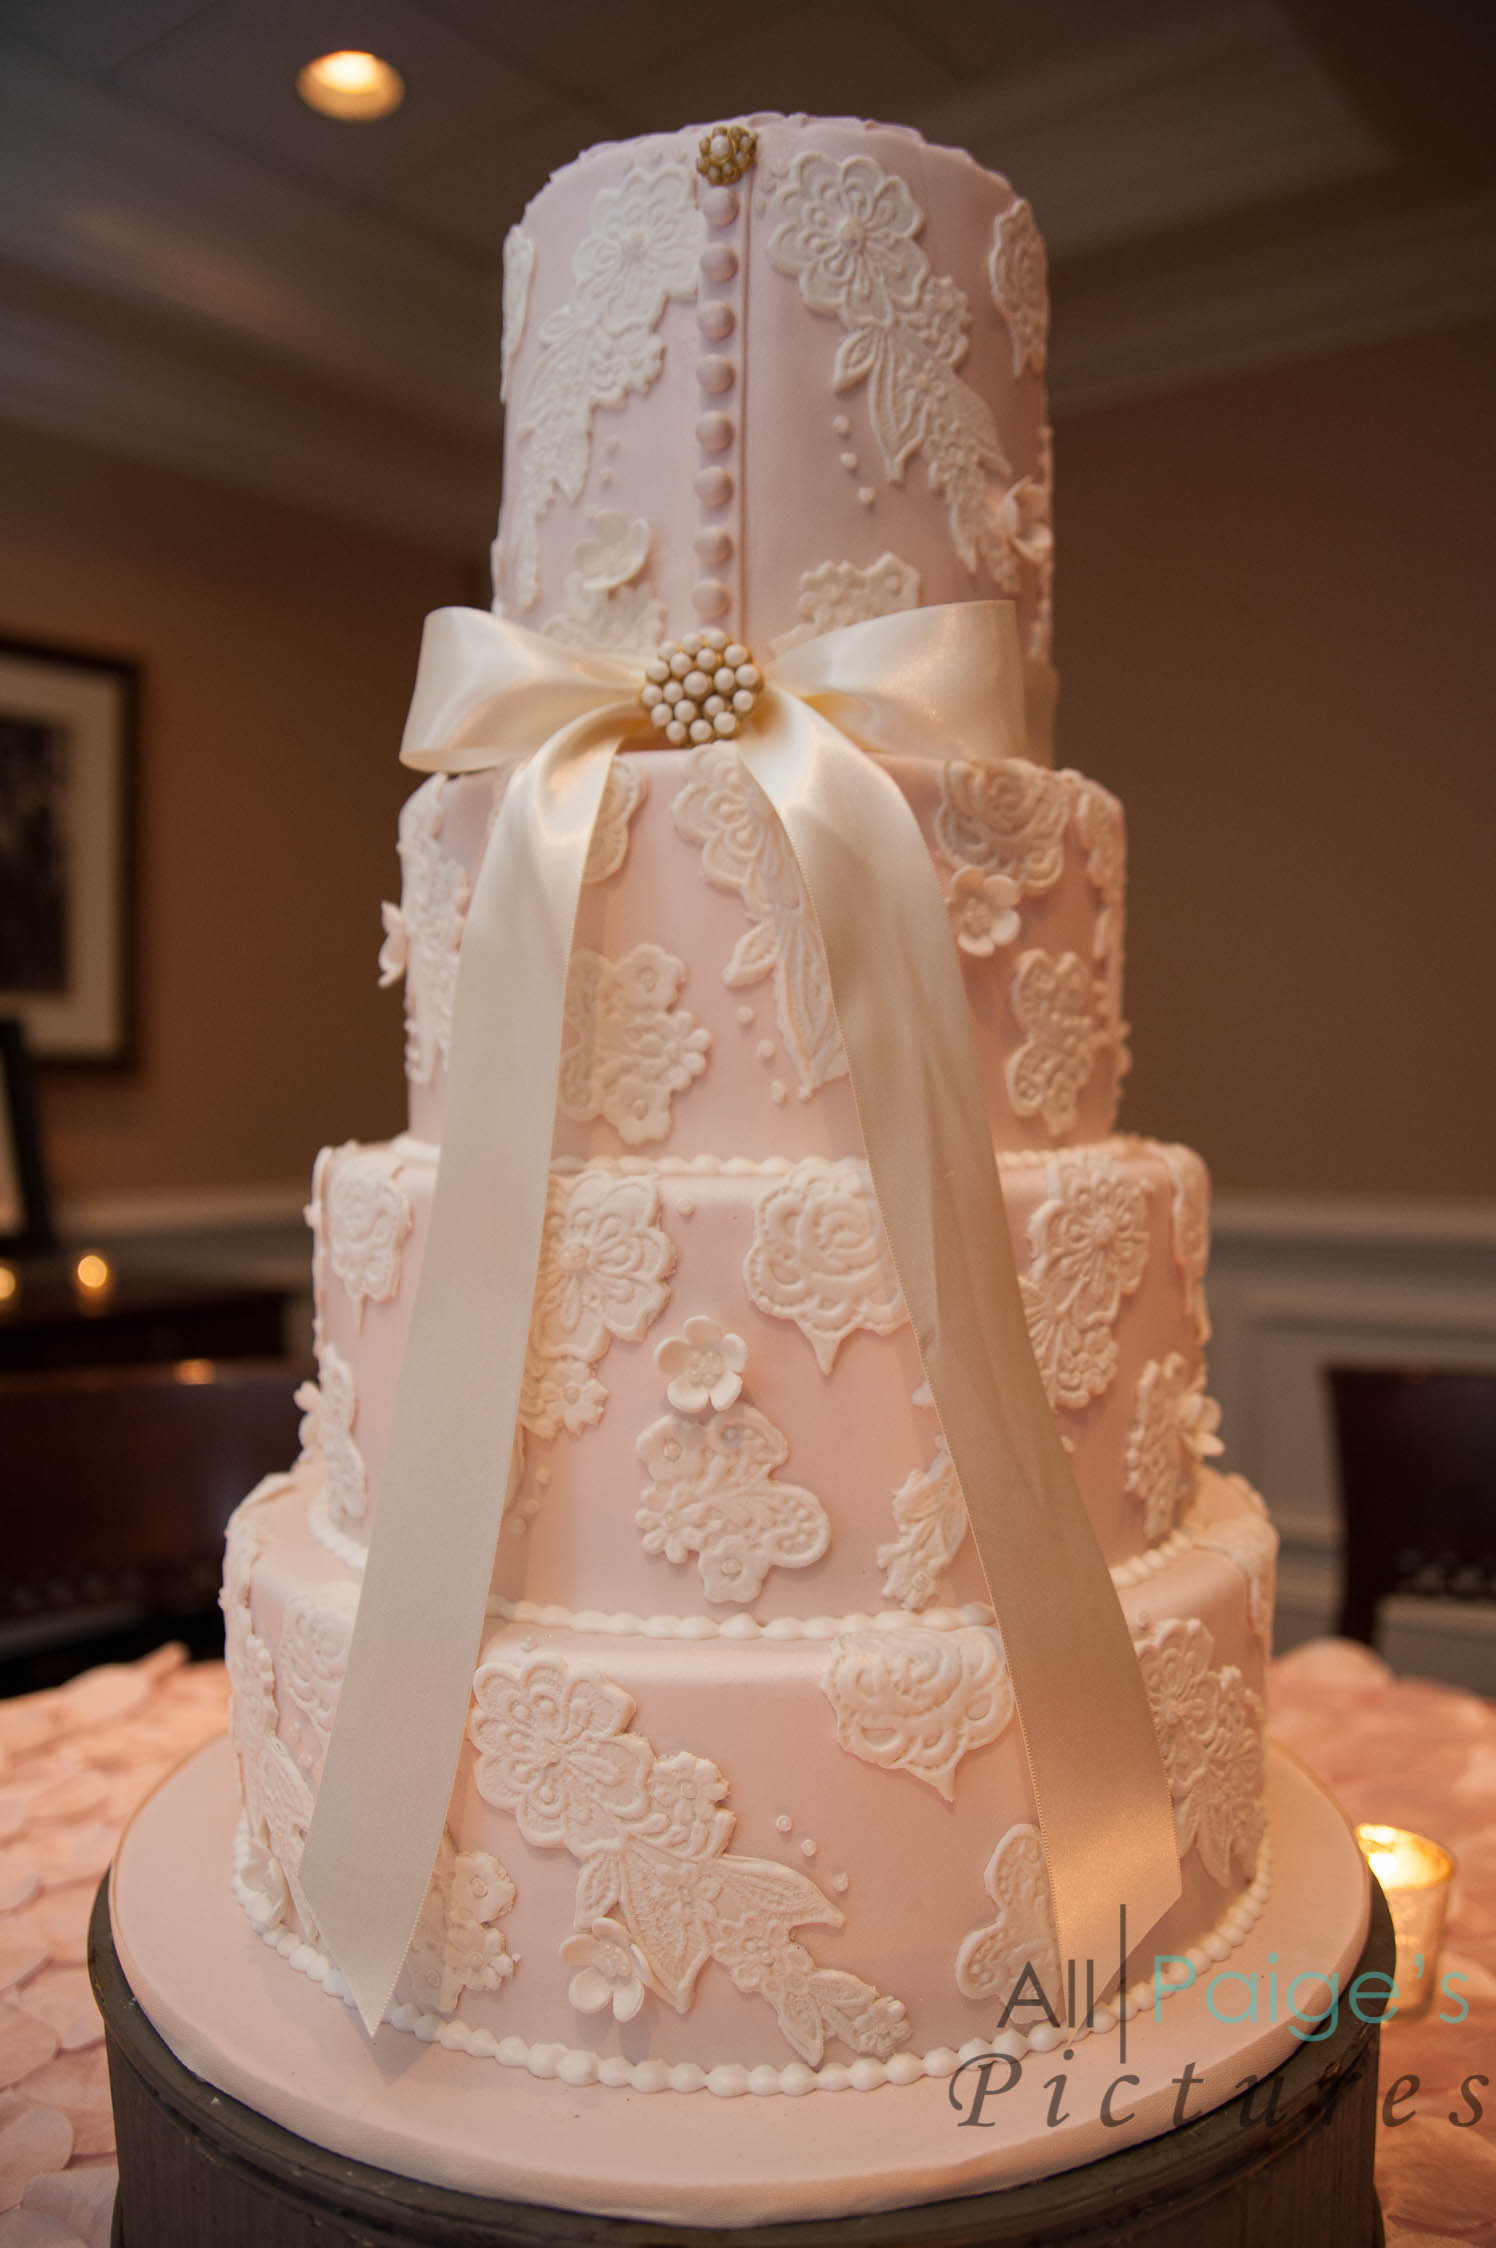 Best Wedding Cakes Atlanta  Atlanta Wedding Cake Trends for 2015